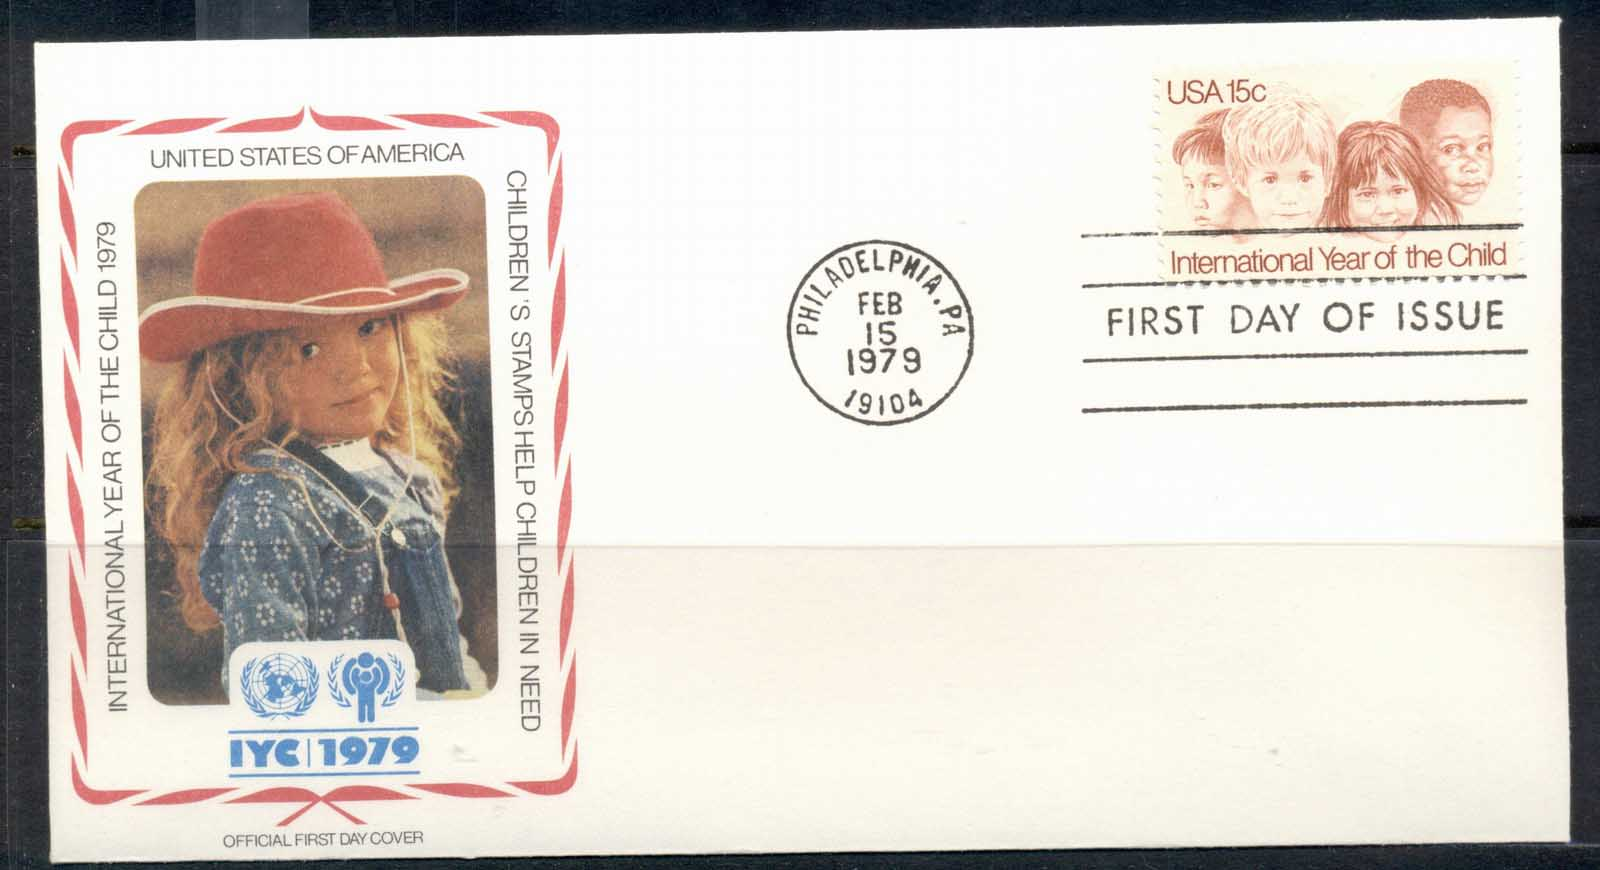 USA 1979 IYC International year of the Child FDC